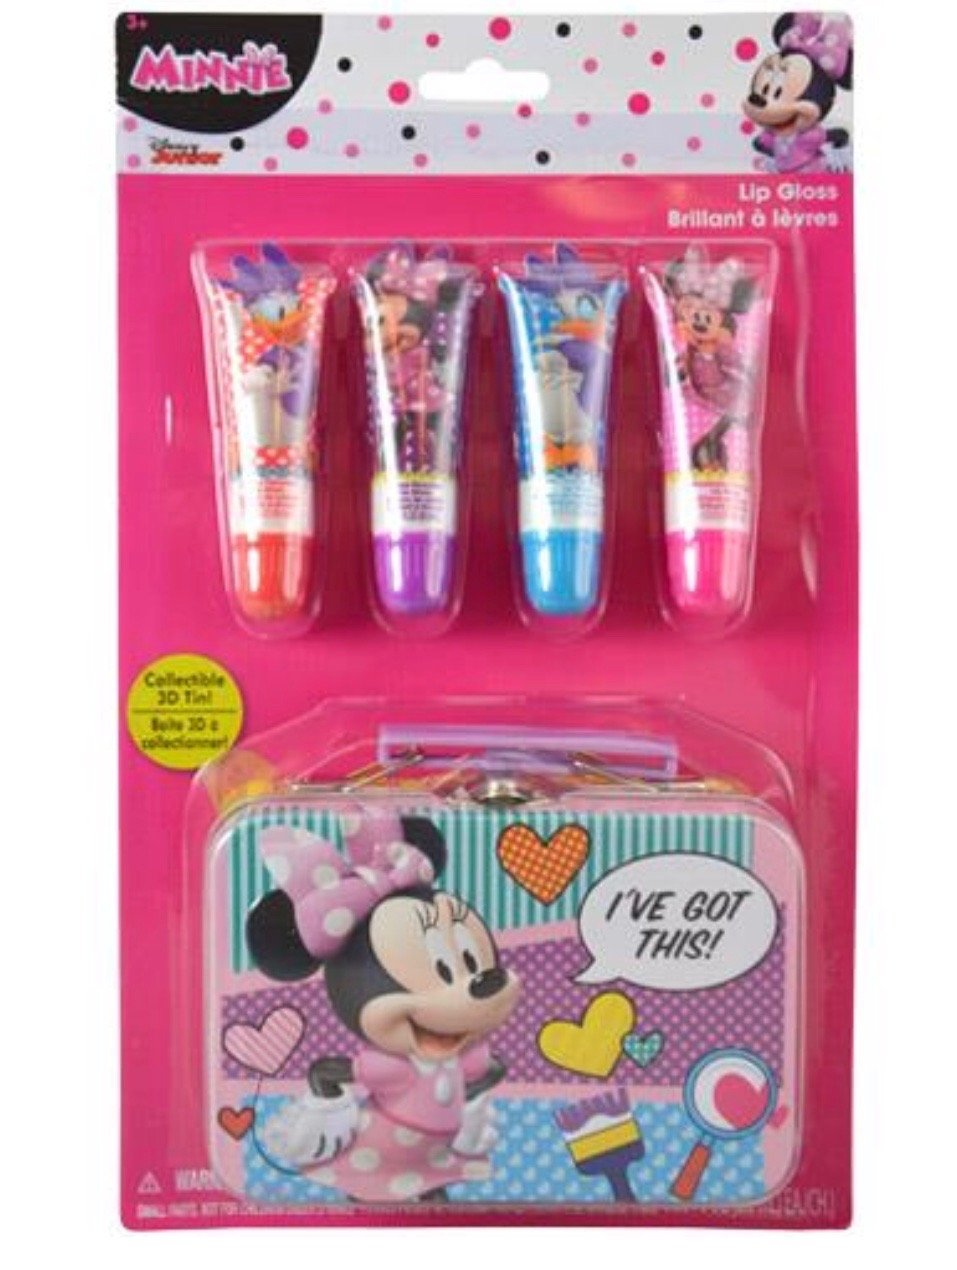 Disney Princess or Minnie Mouse 4 Pack Lip Gloss For Girl (3+ Years) (Disney Minnie Mouse) china